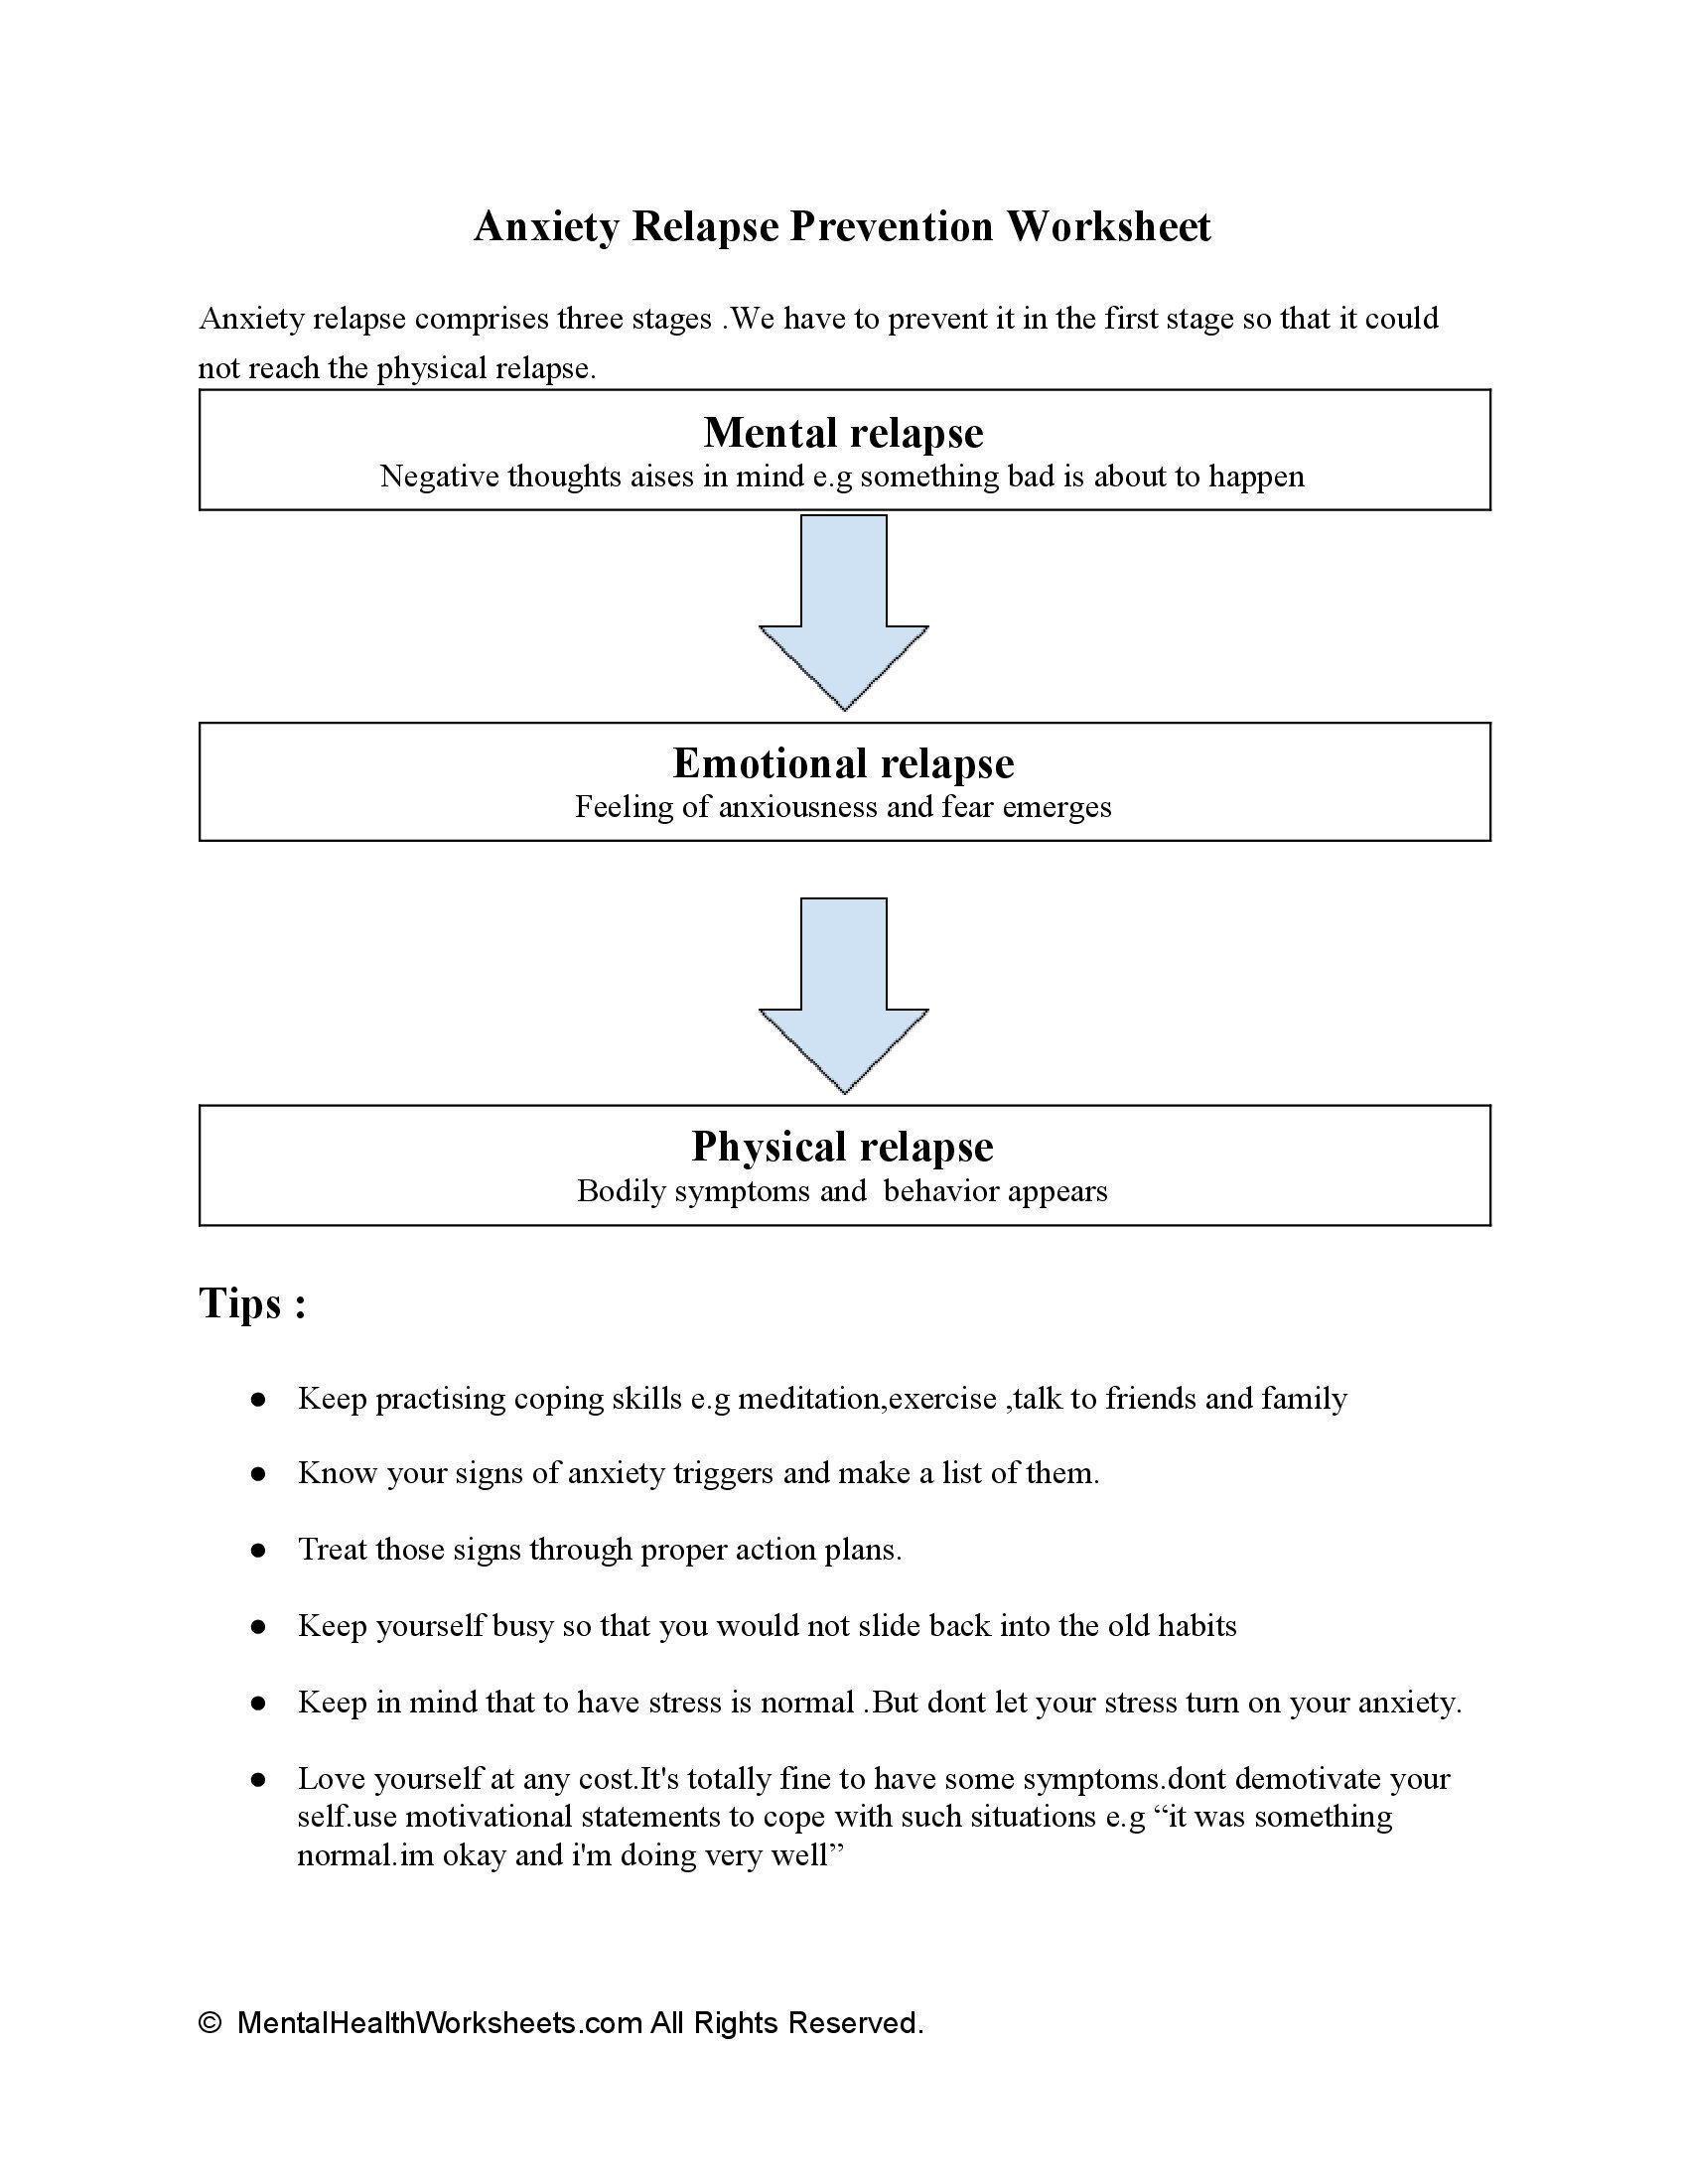 Anxiety Relapse Prevention Worksheet